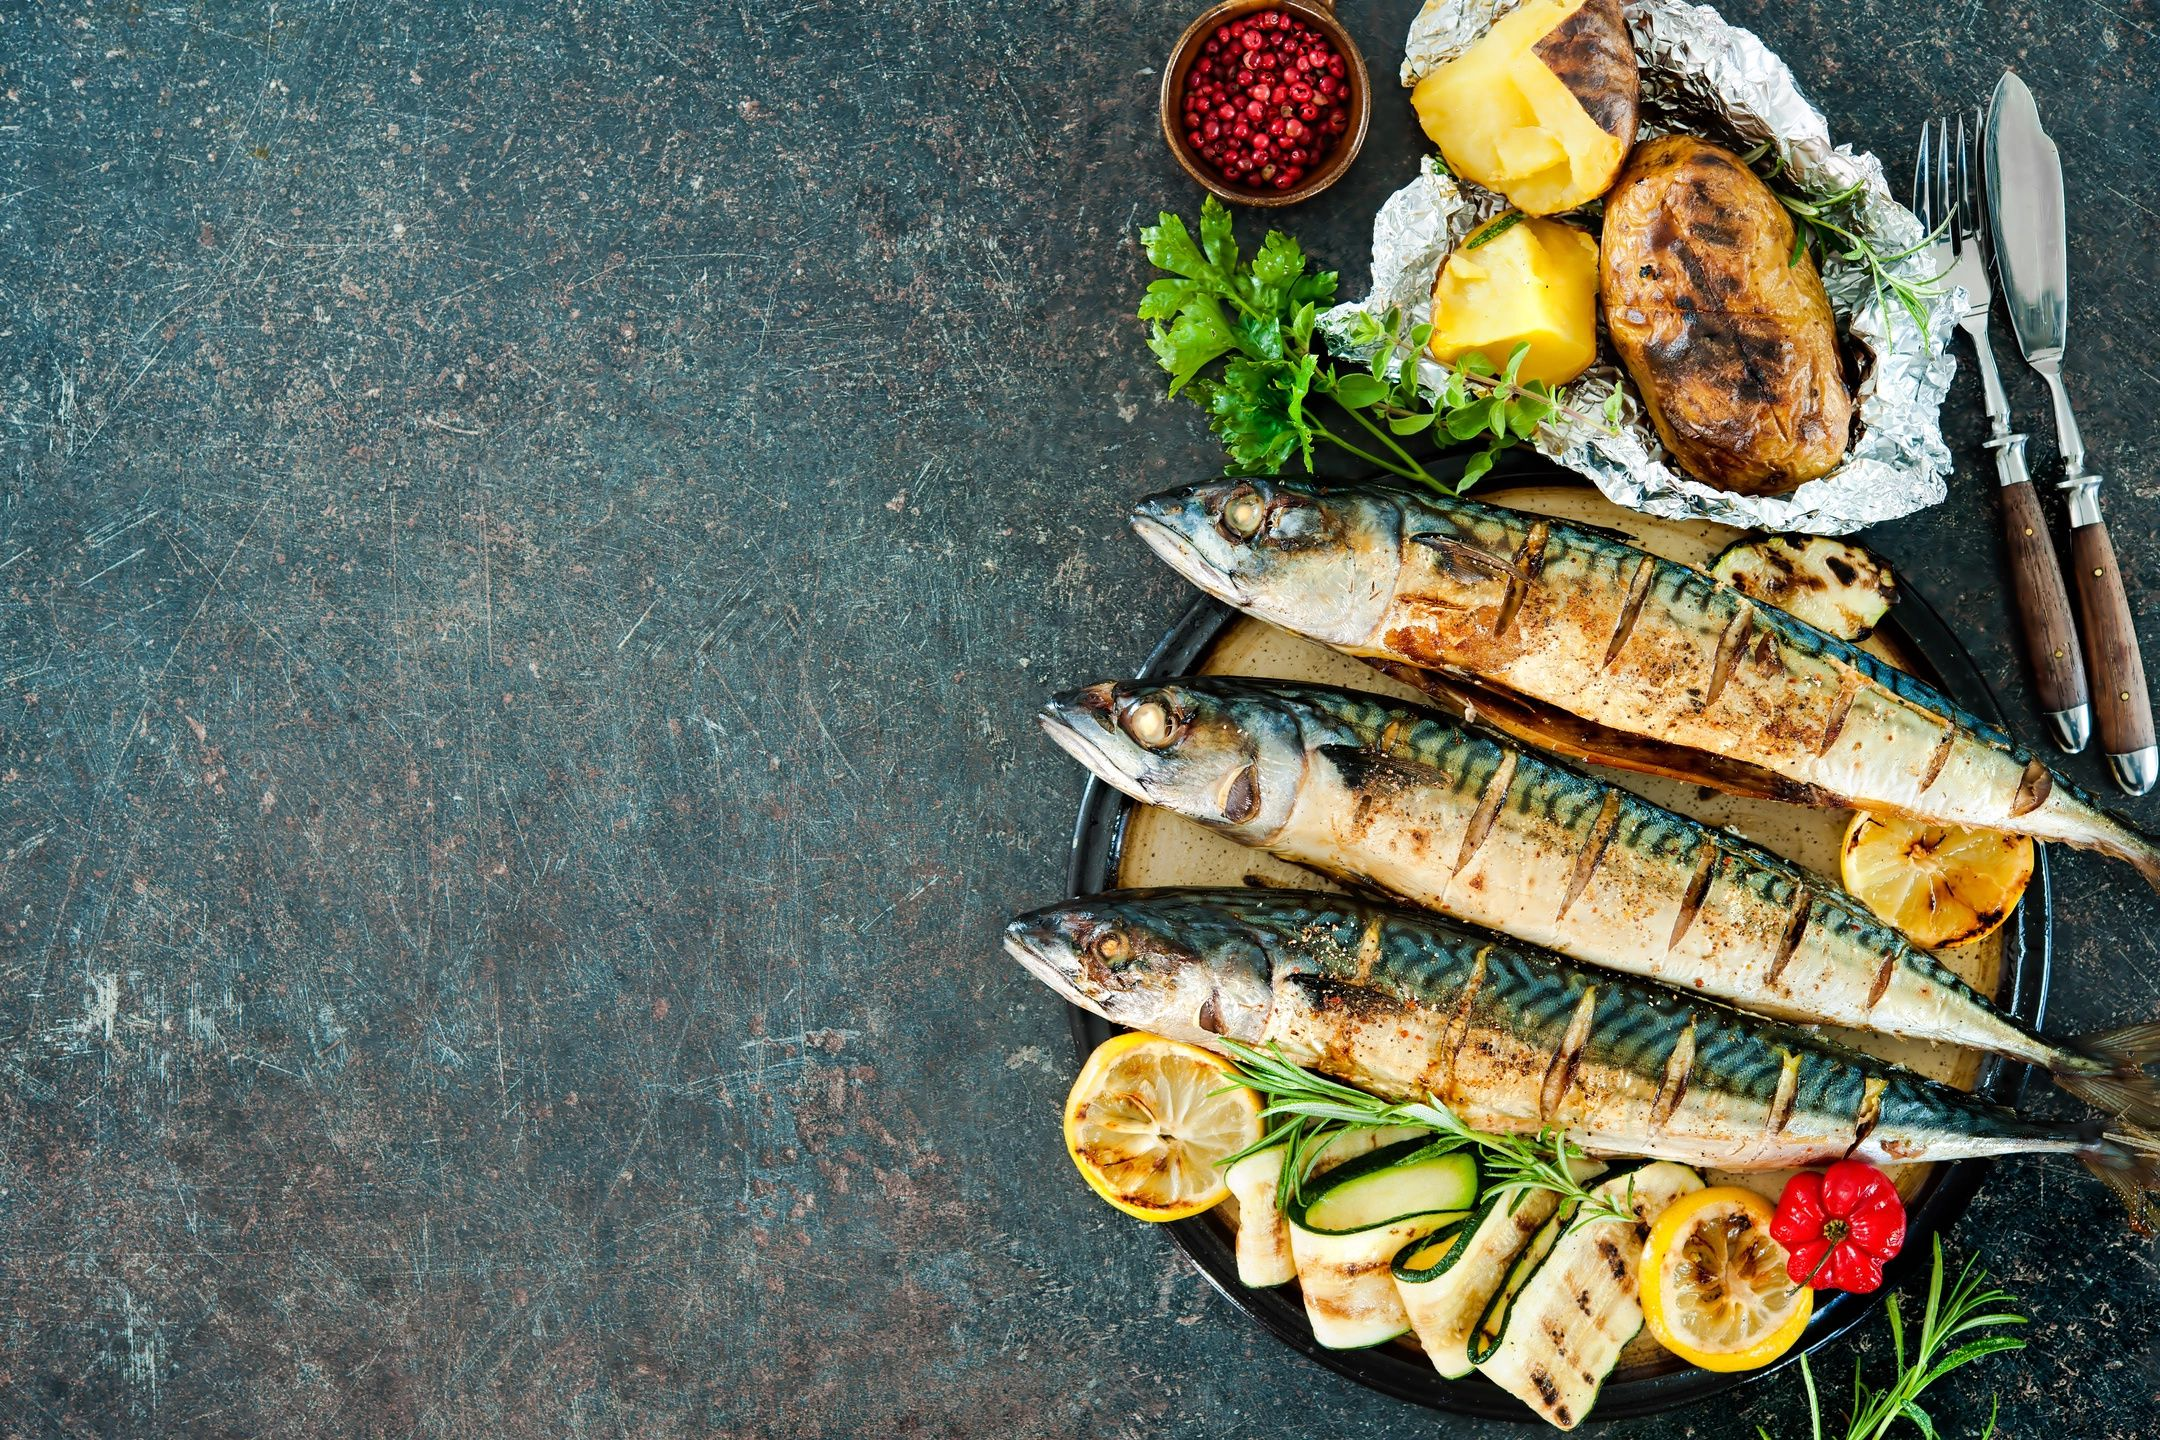 Whole Roasted Fish with Herbs